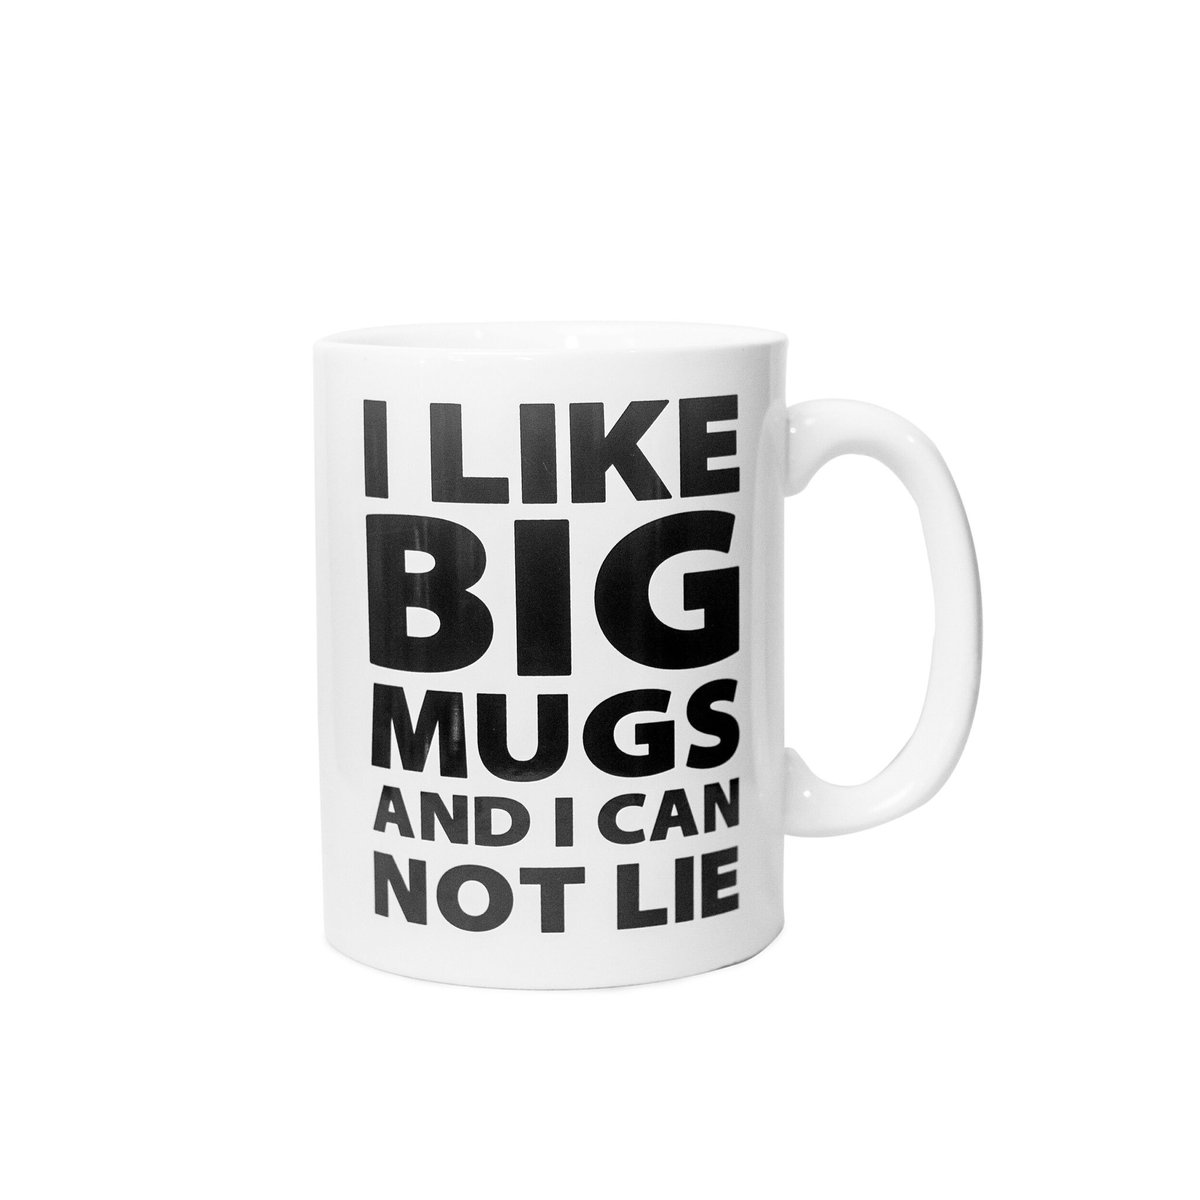 Niche Expressions on Twitter: Our collection of mugs are really naughty, just like you😉 Grab yours in our stores now! #mugs #giftshop #decor #photography #stylish #interiordecor #homewares #giftideas #luxurygifts #packaging #spacestyling   #NicheXpressions, your perfect idea!…